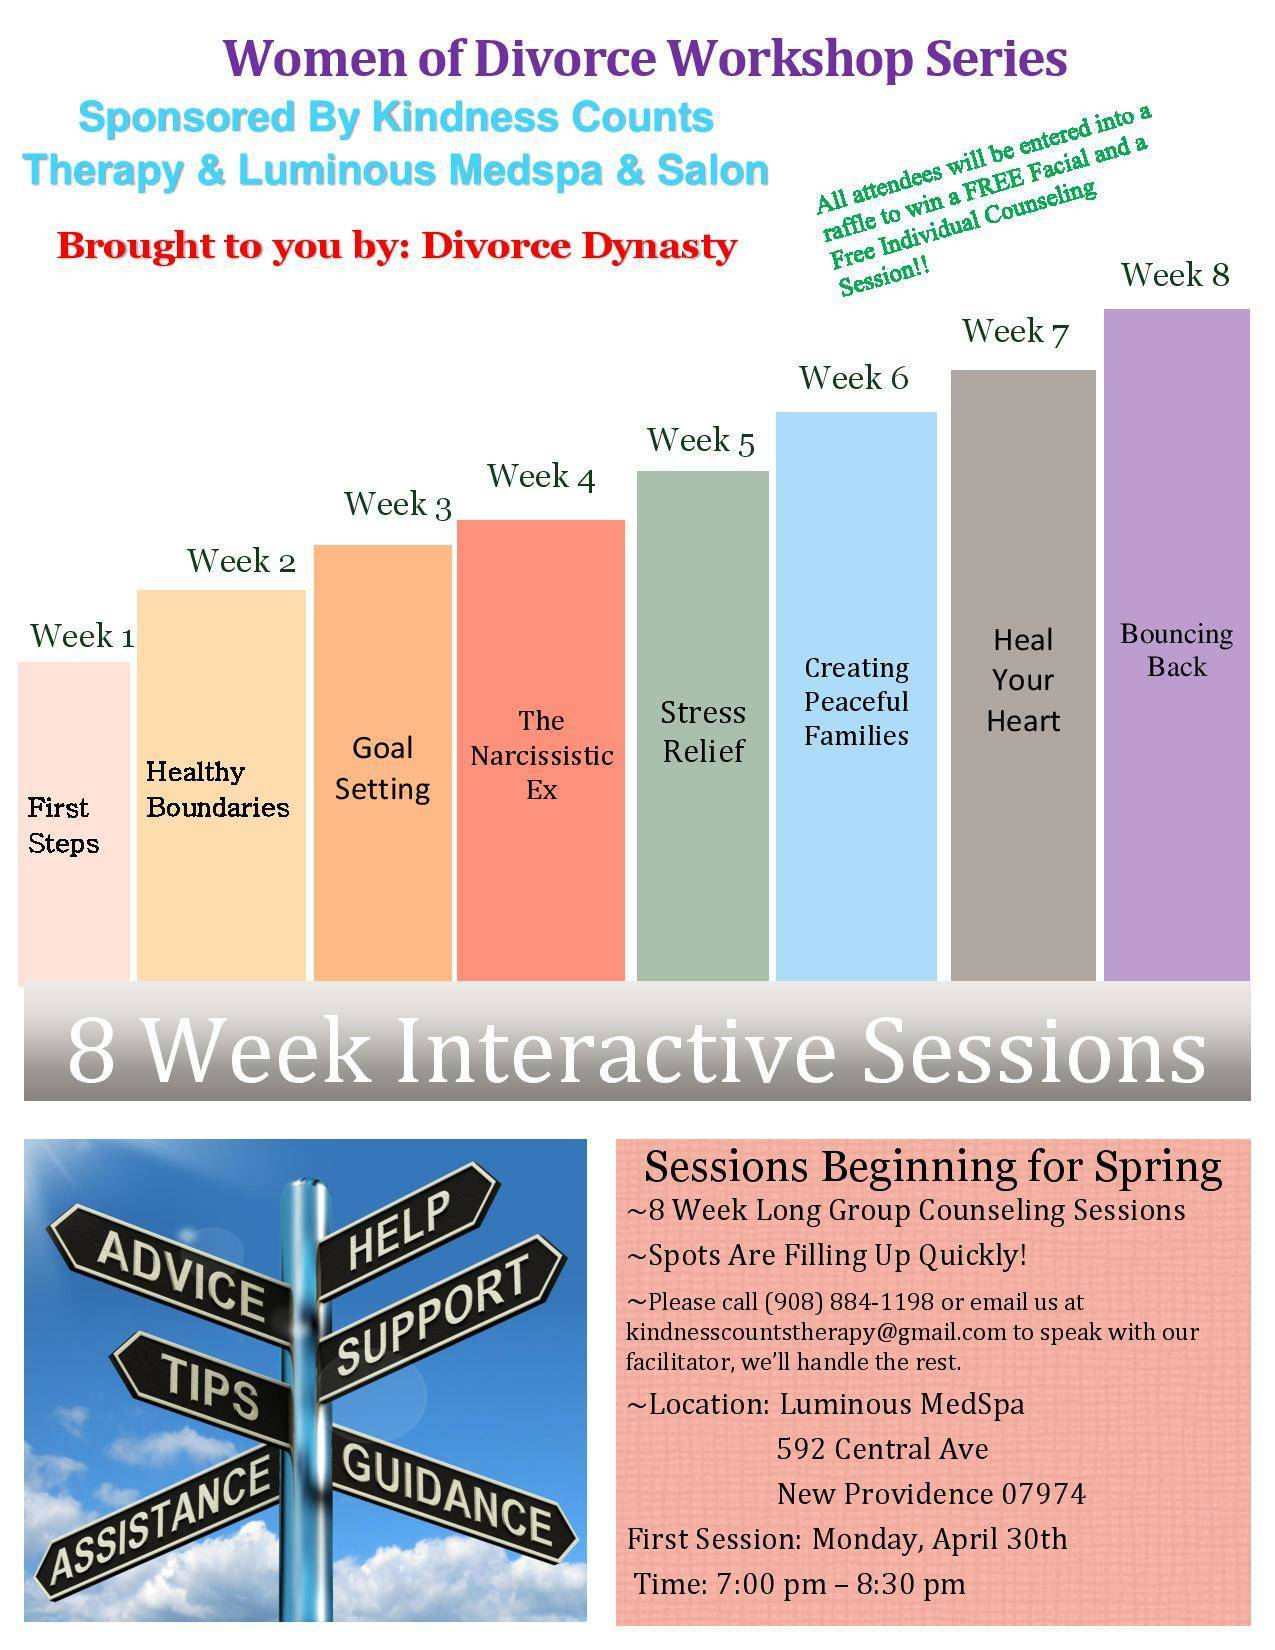 Divorce dynasty presents a free group counseling series tapinto divorce seriesg solutioingenieria Gallery